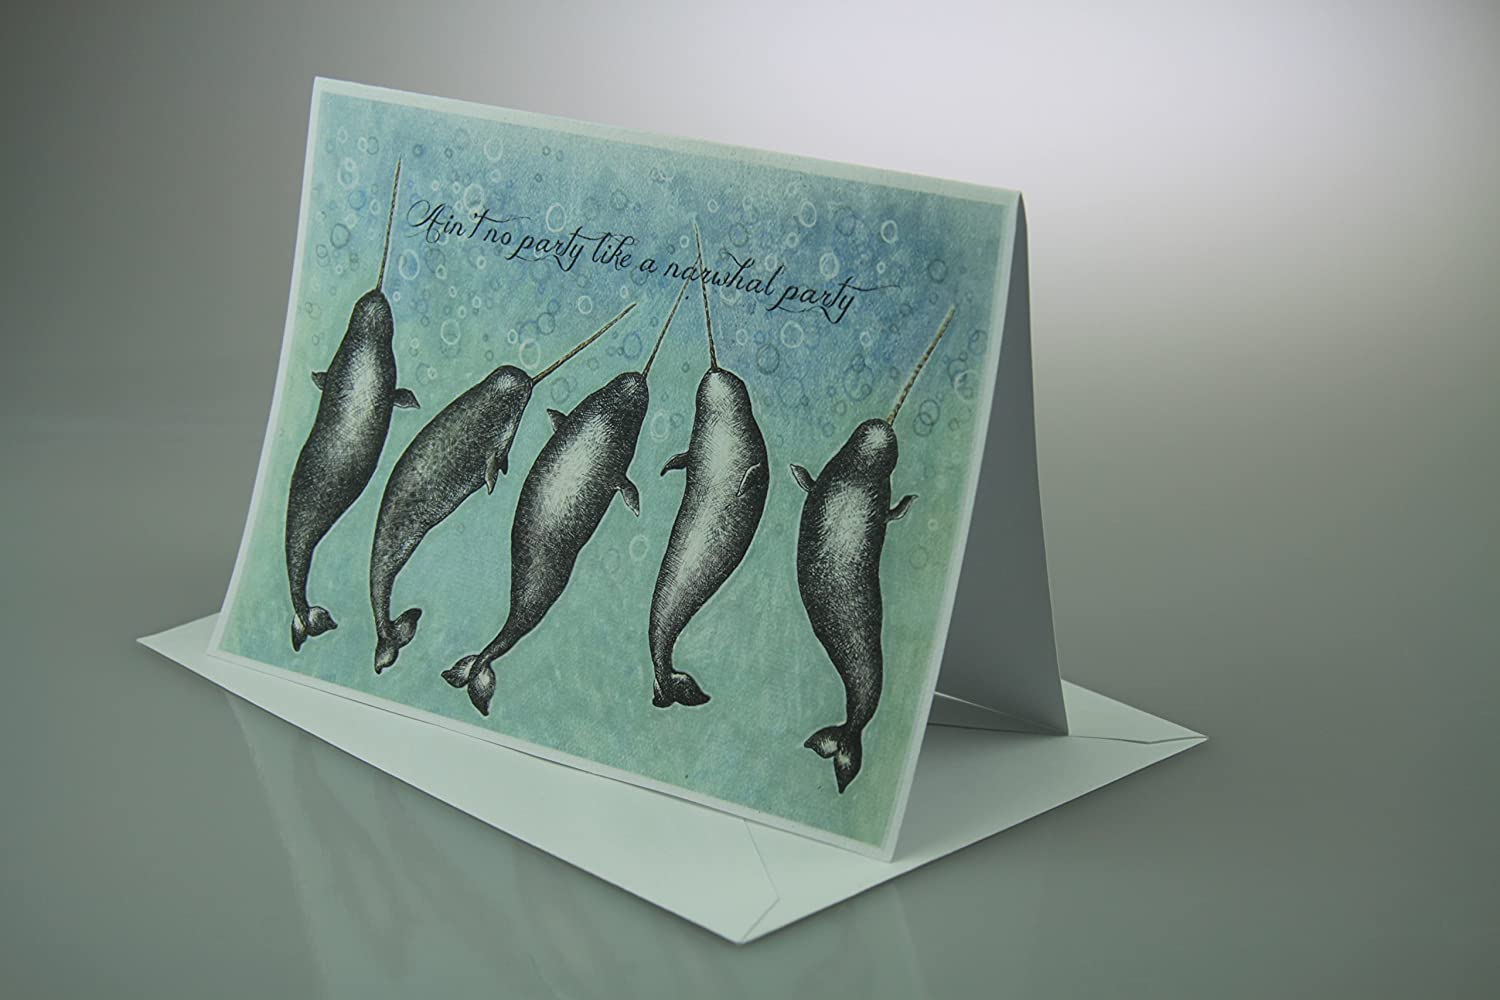 Ain't No Party Like a Narwhal Party card